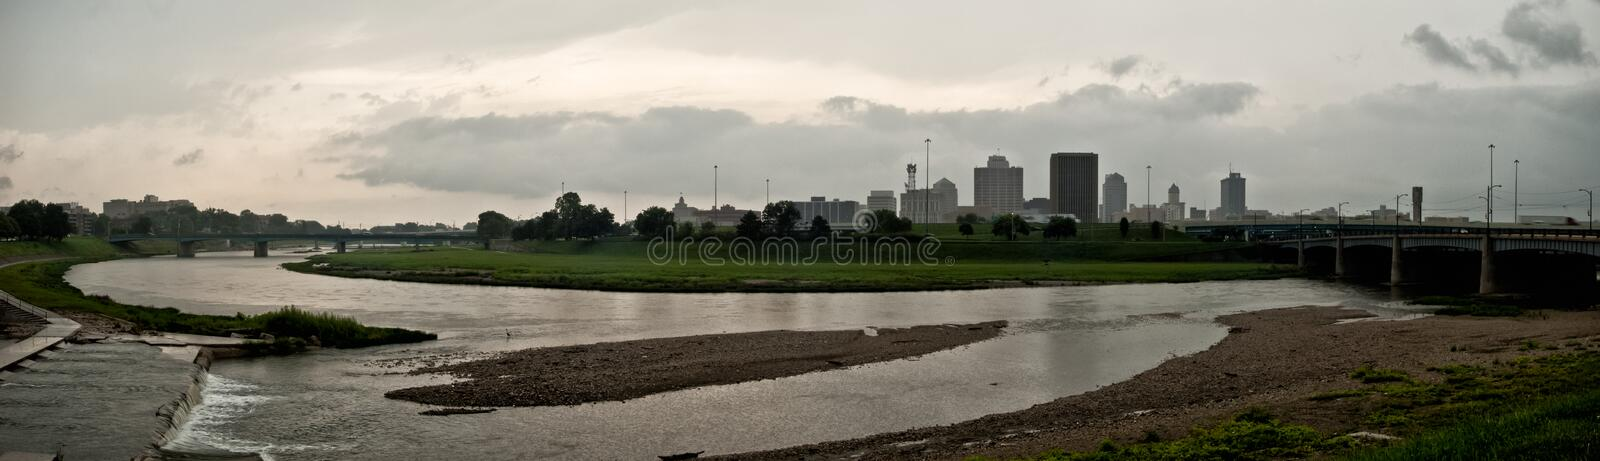 Dayton Skyline by the River royalty free stock image